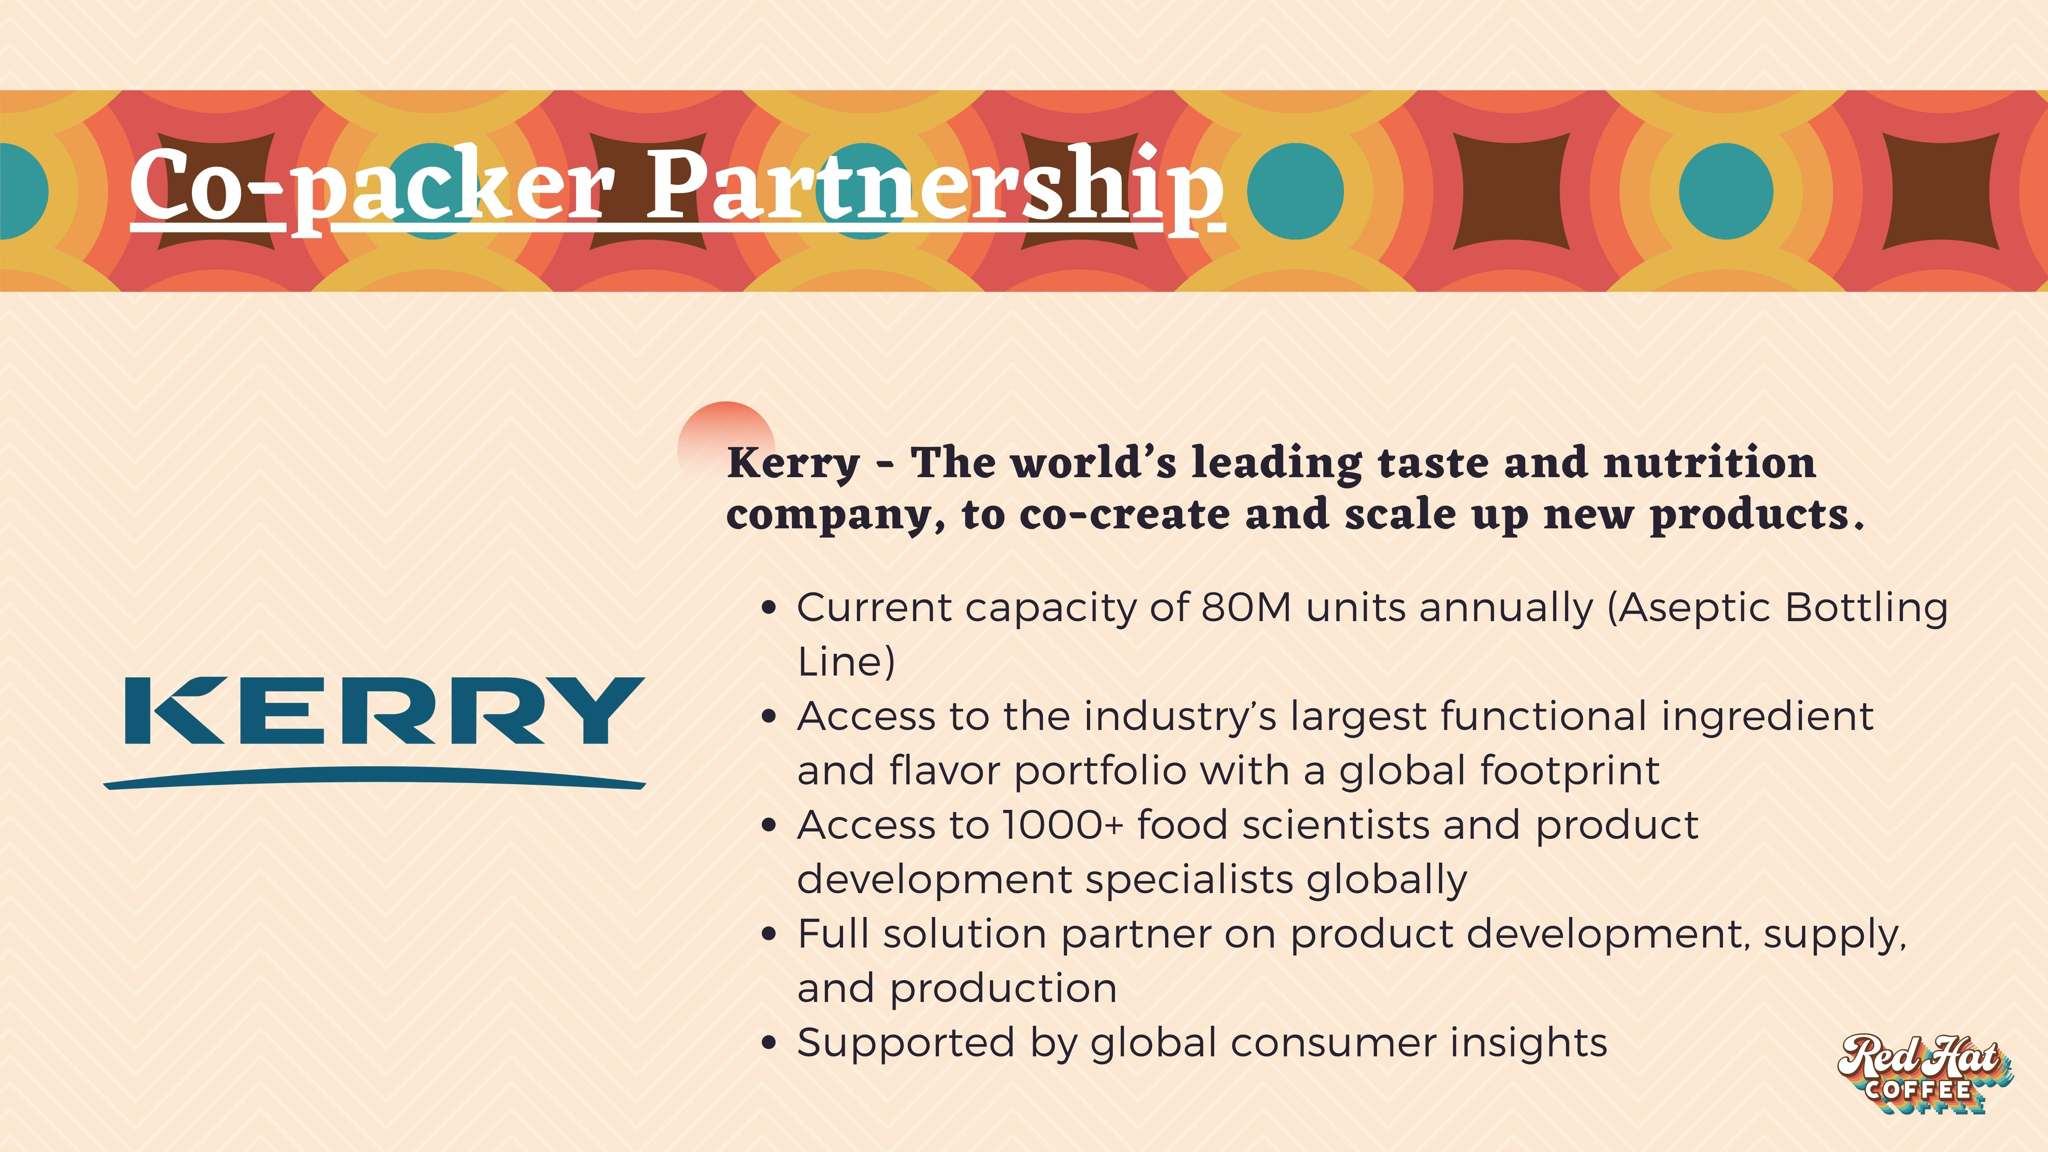 Co-packer partnership with Kerry, the world's leading taste and nutrition company. Current capacity of 80M unites annually. Access to the industry's largest functional ingredient and flavor portfolio with a global footprint. Access to 1000 food scientists and product development specialists. Full solution partner.